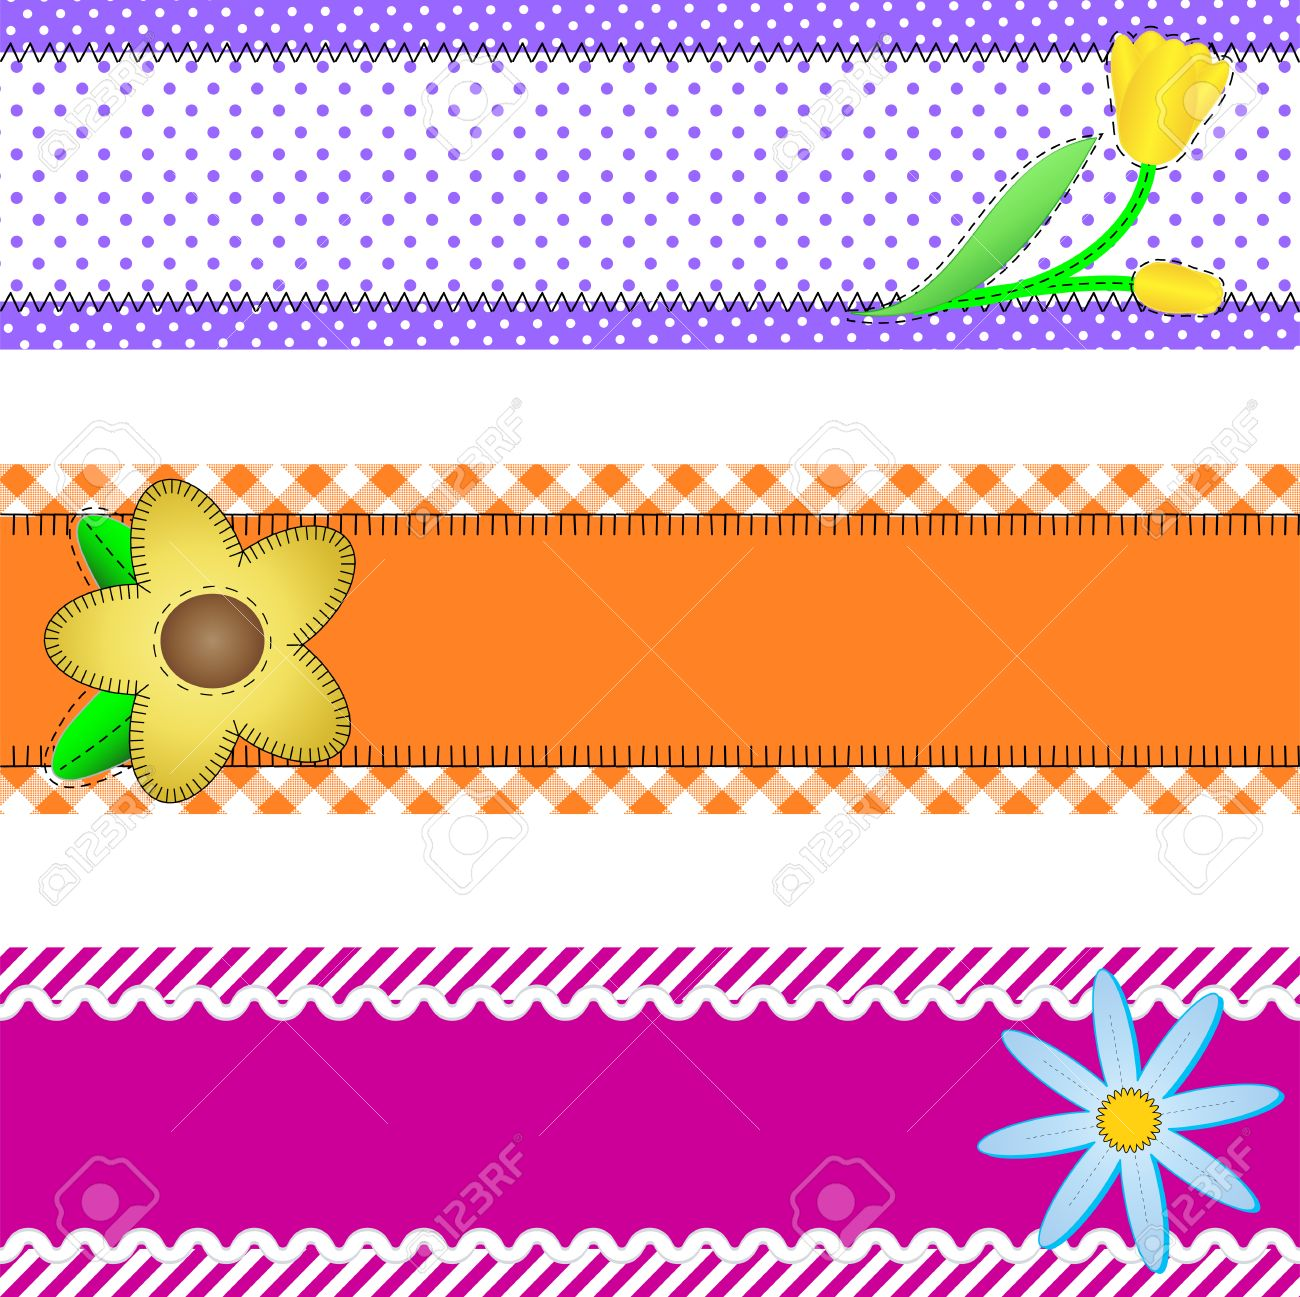 Three banners or borders of stripes, polka dots, or gingham with flowers, accent quilt stitches and plenty of copy space. - 7256366